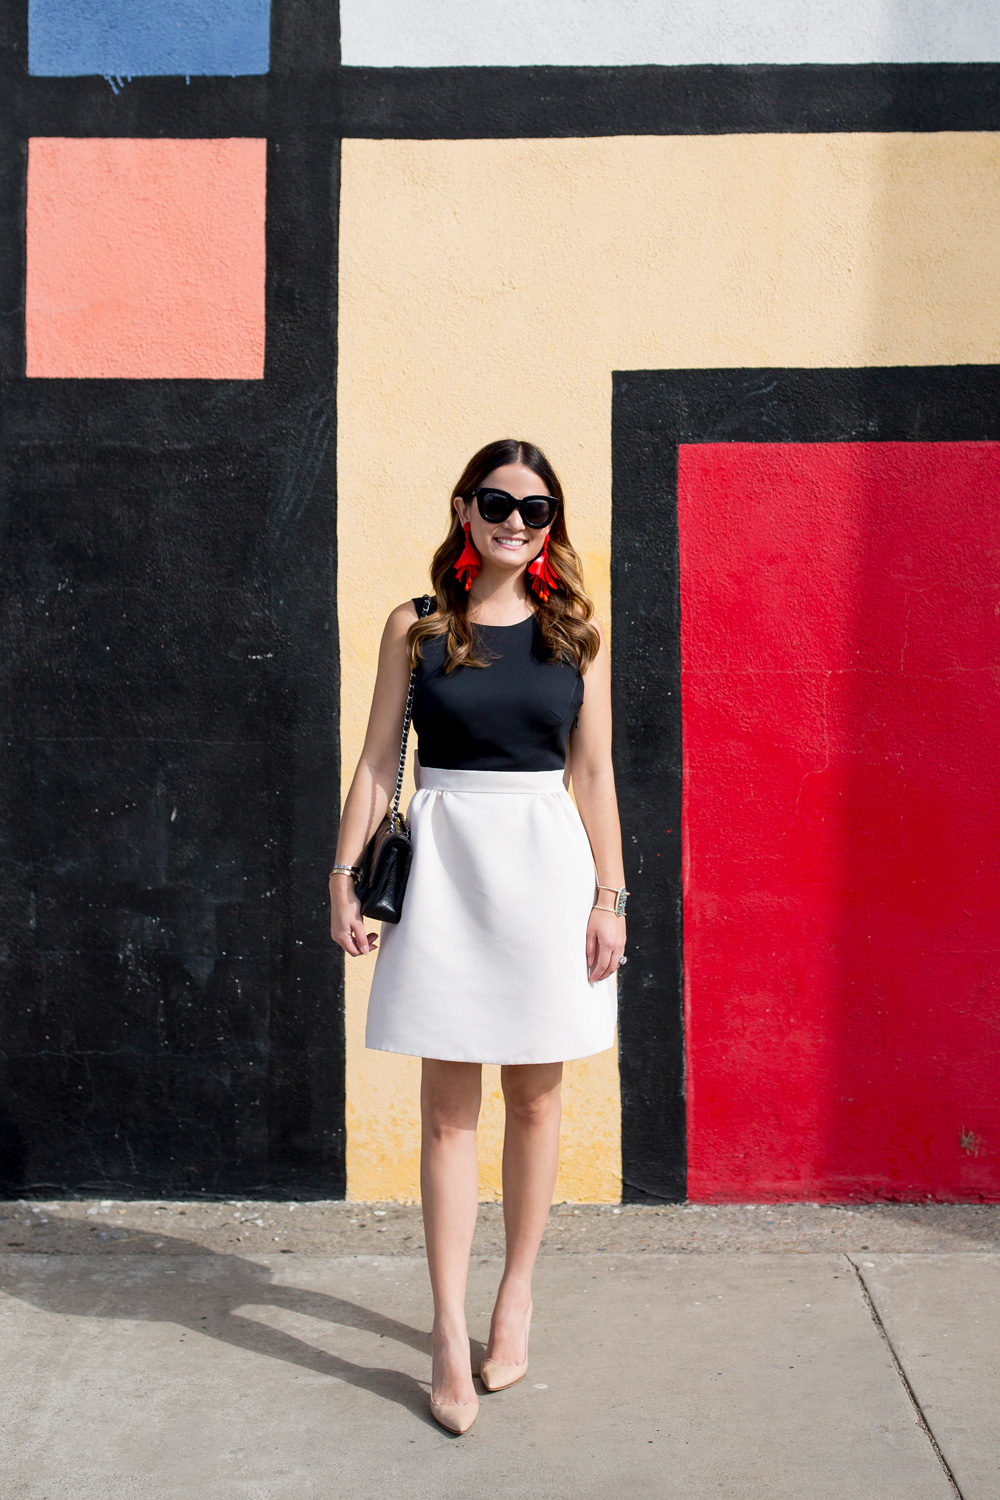 Jennifer Lake Style Charade in a black and white Kate Spade bow dress, red Oscar de la Renta floral earrings, and Chanel quilted flap bag at a Mondrian mural in Los Angeles